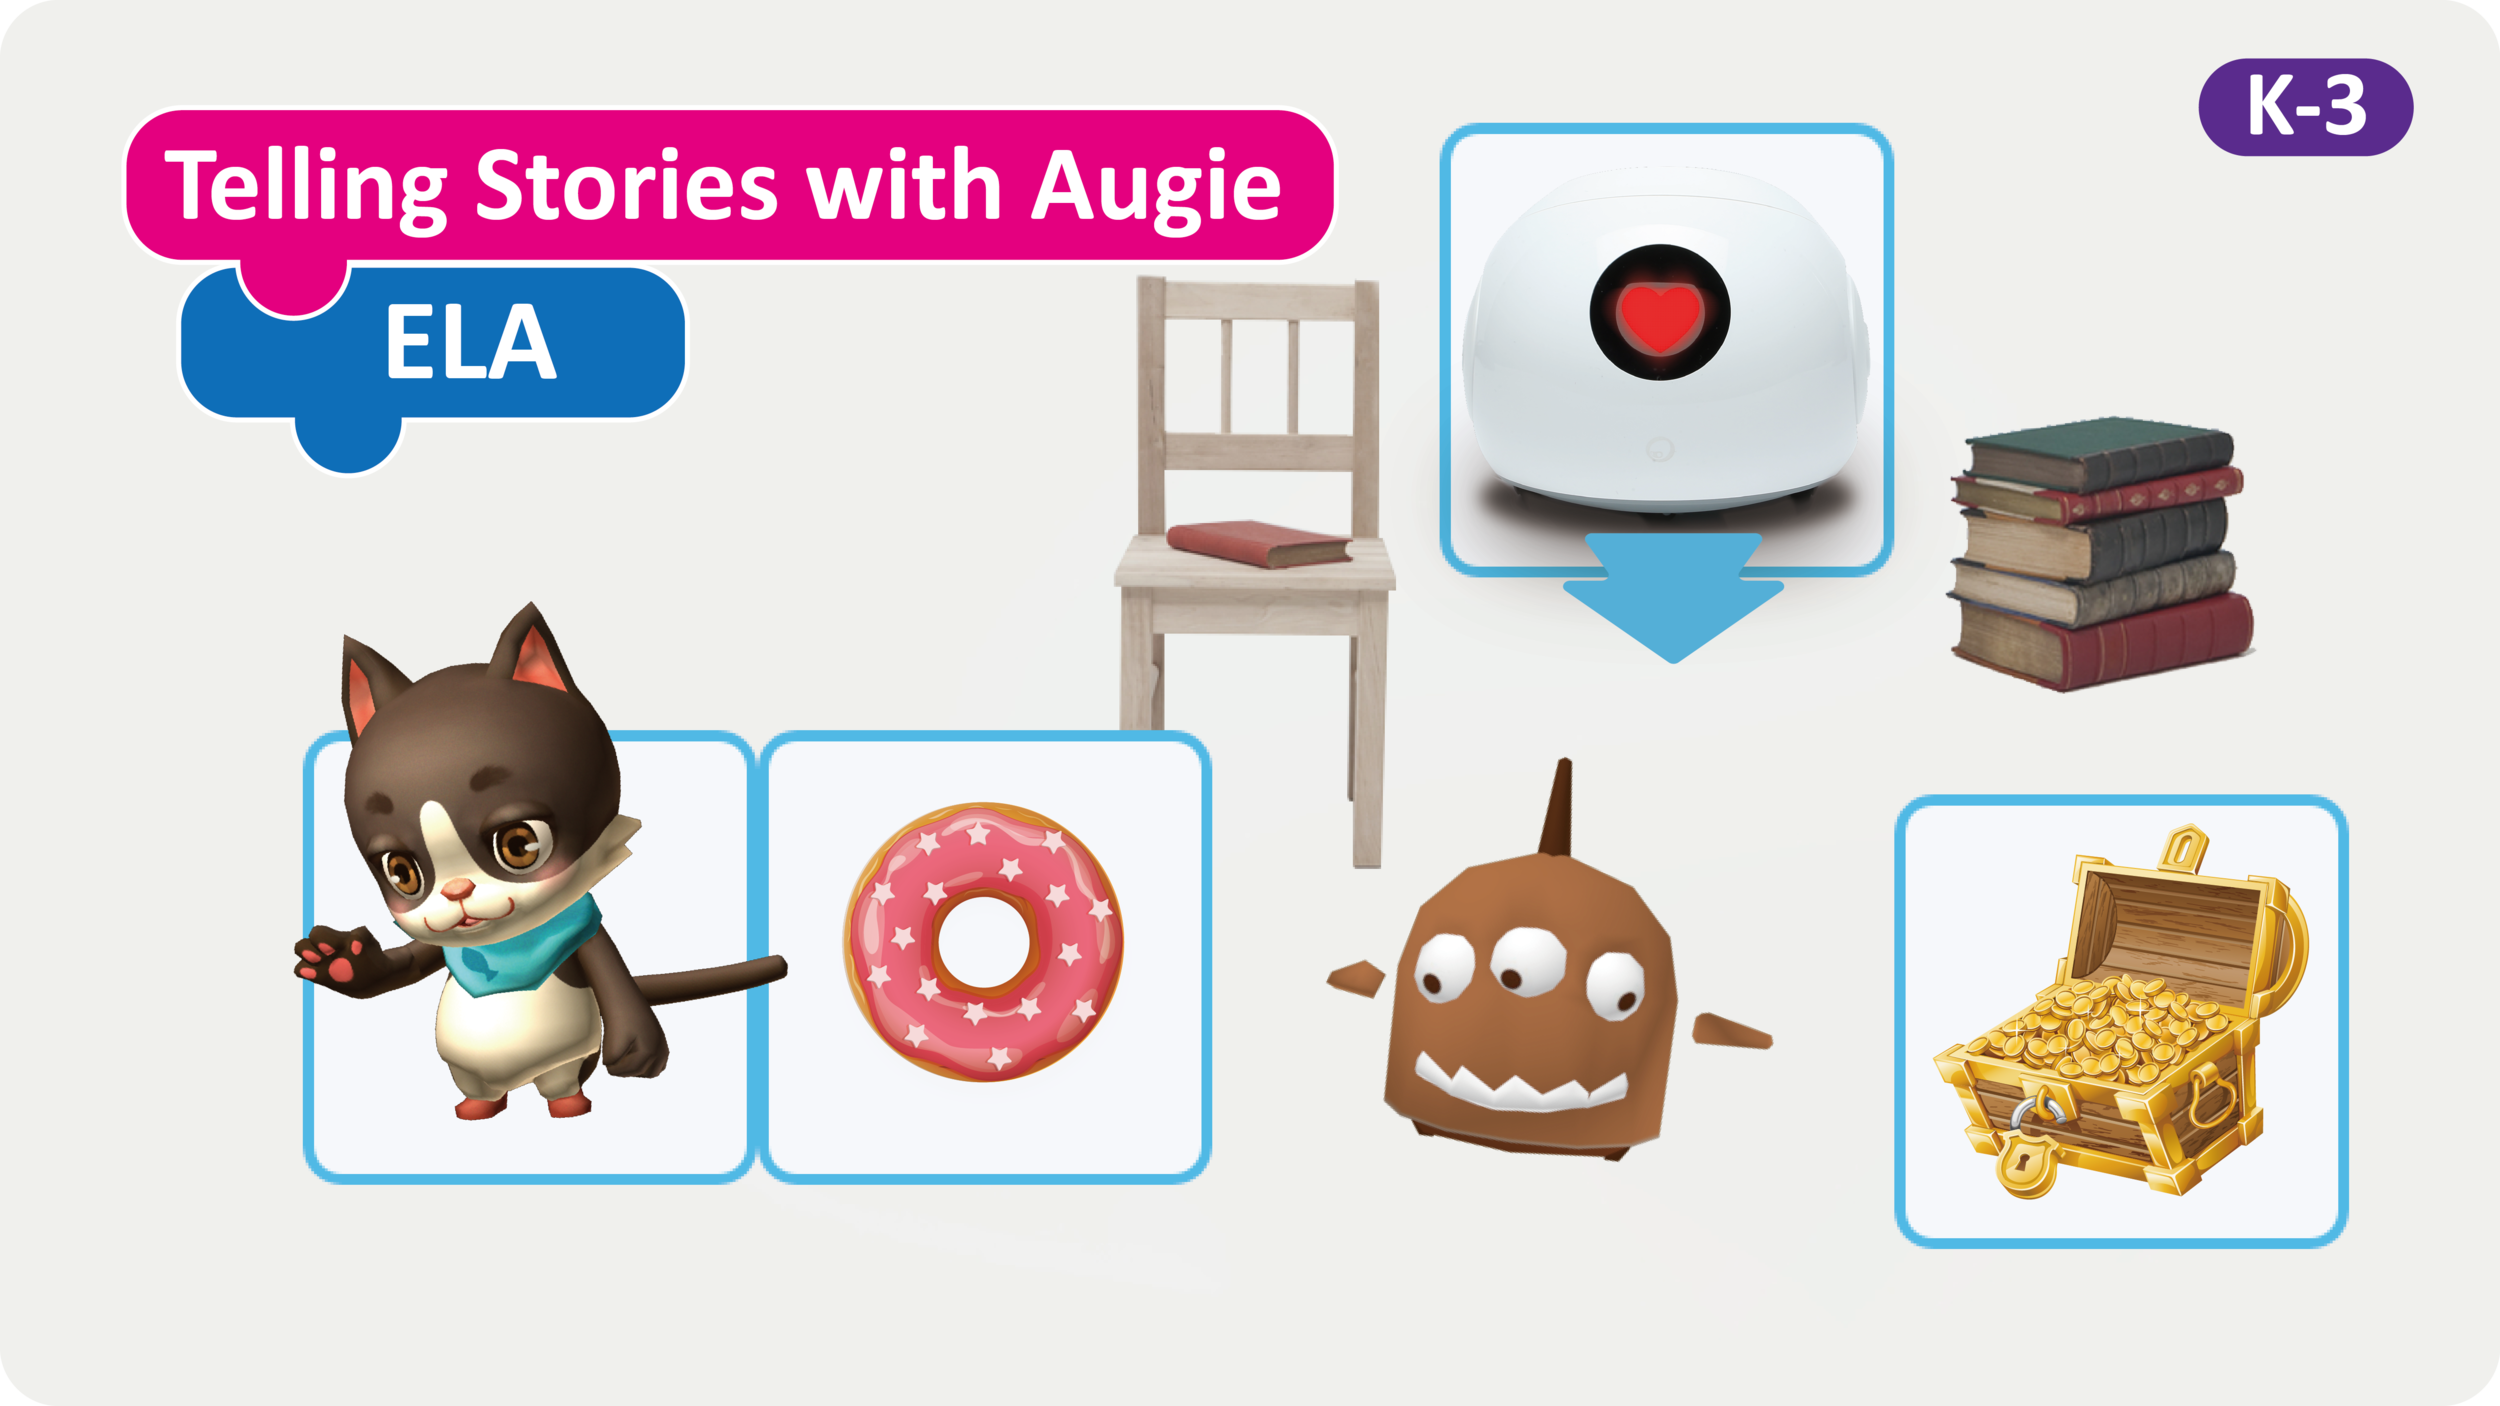 Telling Stories with Augie